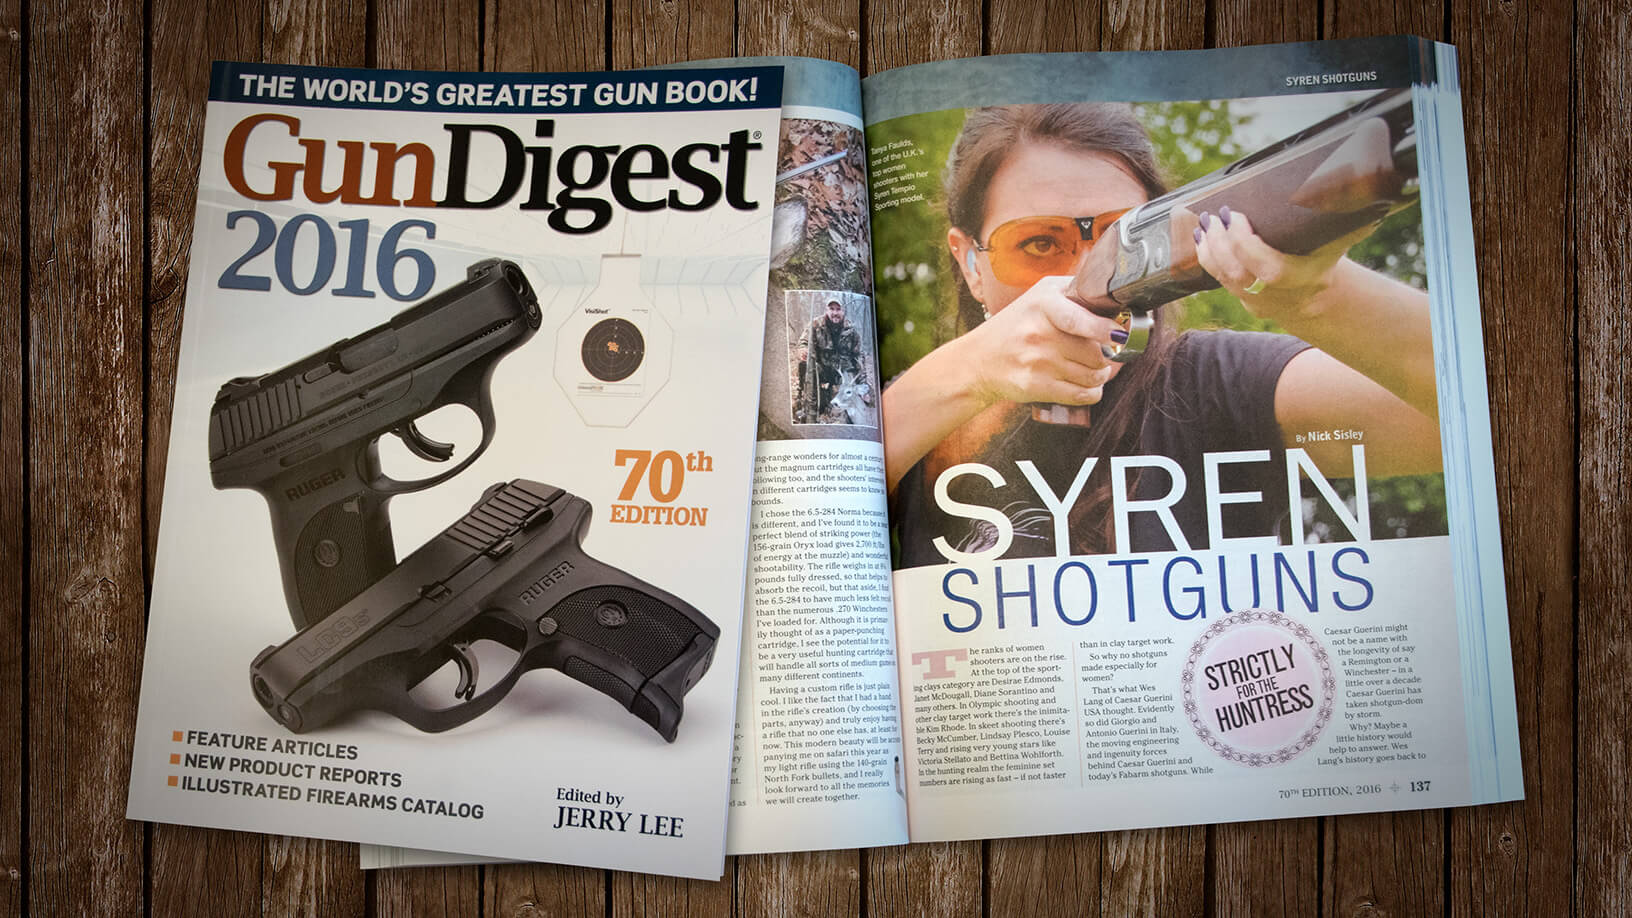 [Gun Digest 2016] Syren Shotguns: Strictly for the Huntress